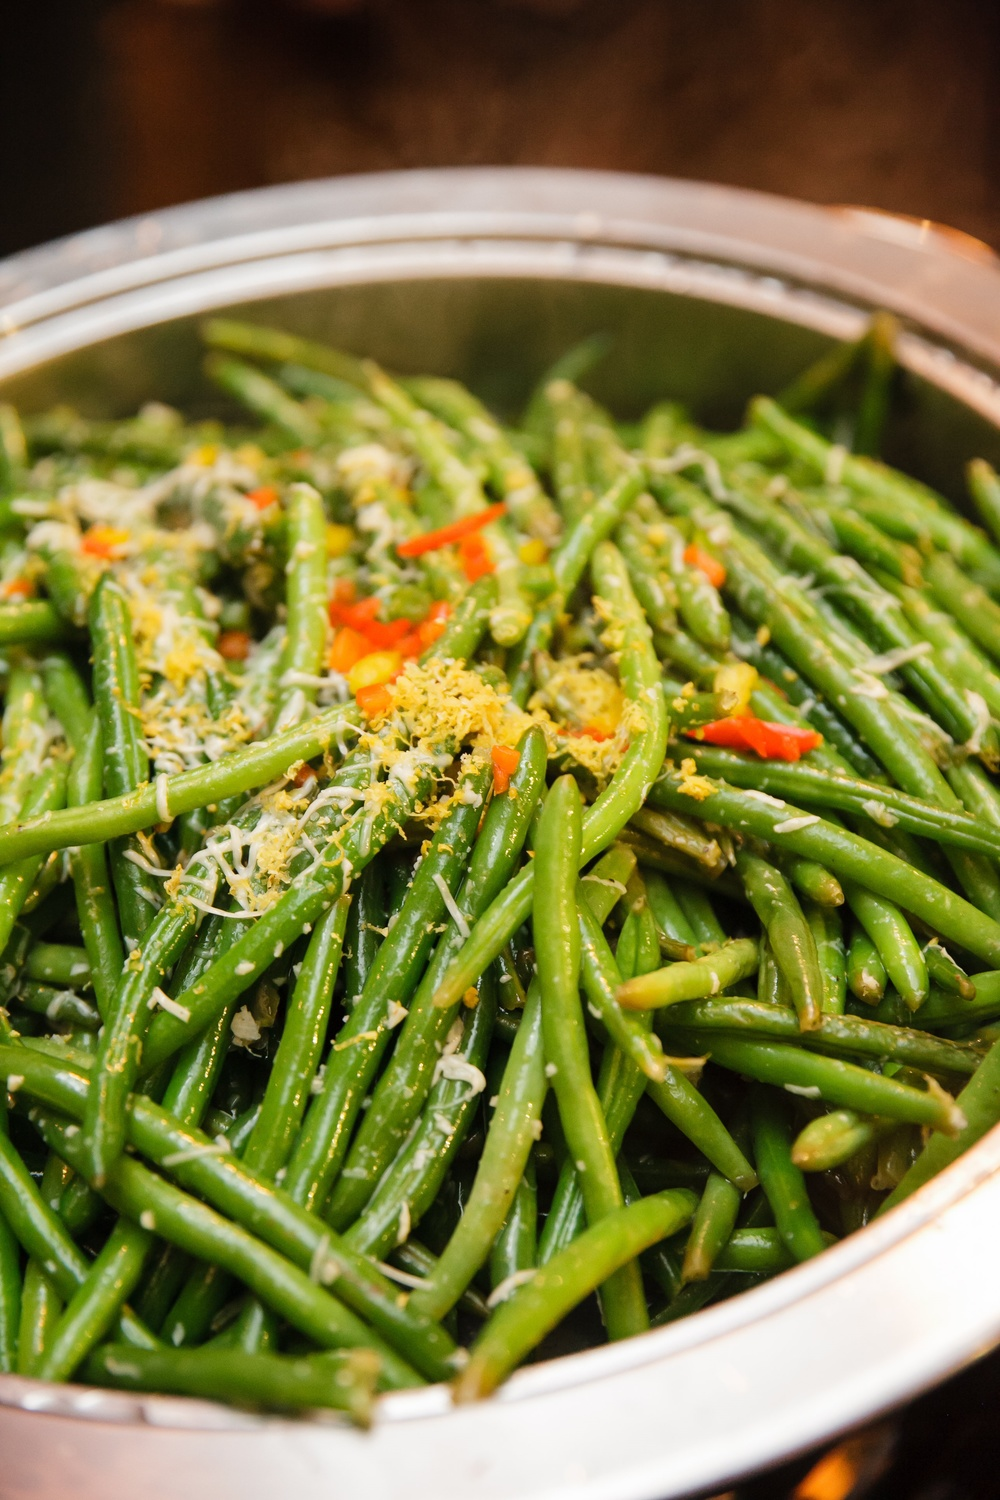 Reggiano Green Beans Infused with Lemon Zest and Garlic garnished Grated Parmigiano | Red Sparrow Photography